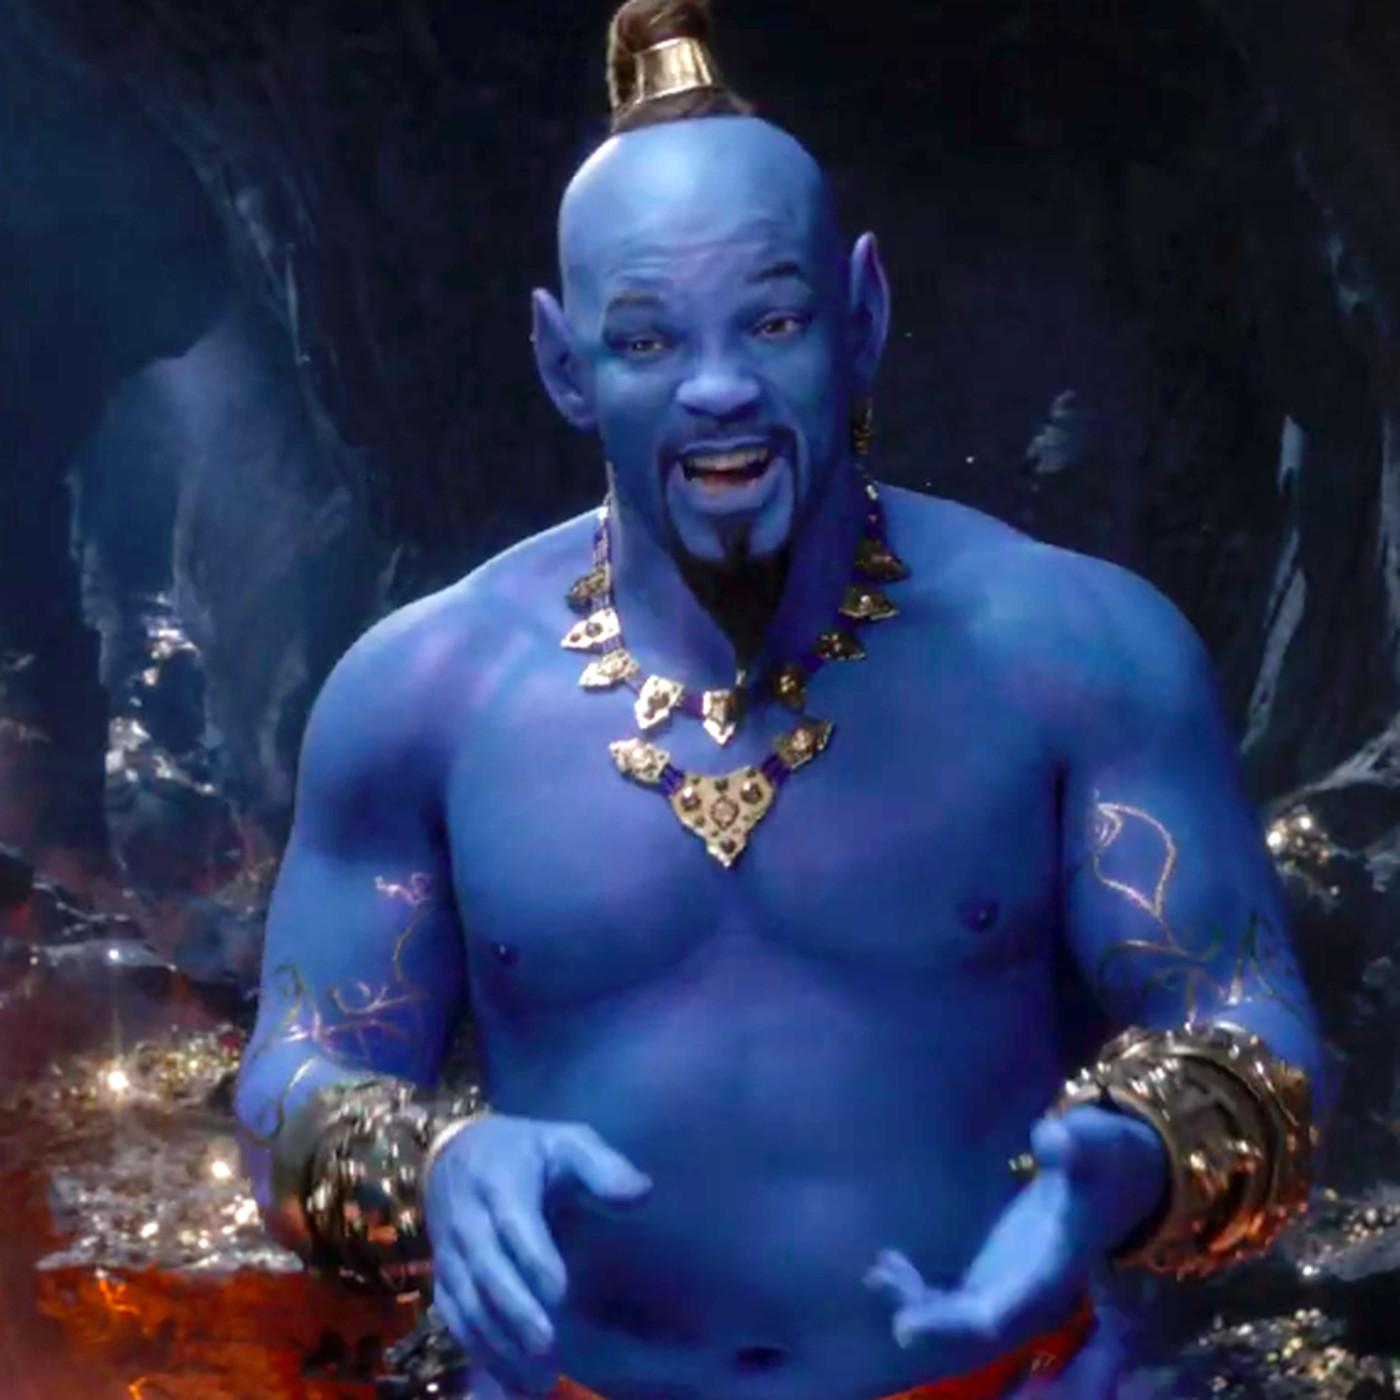 Aladdin's Grammys trailer finally reveals Will Smith's very blue